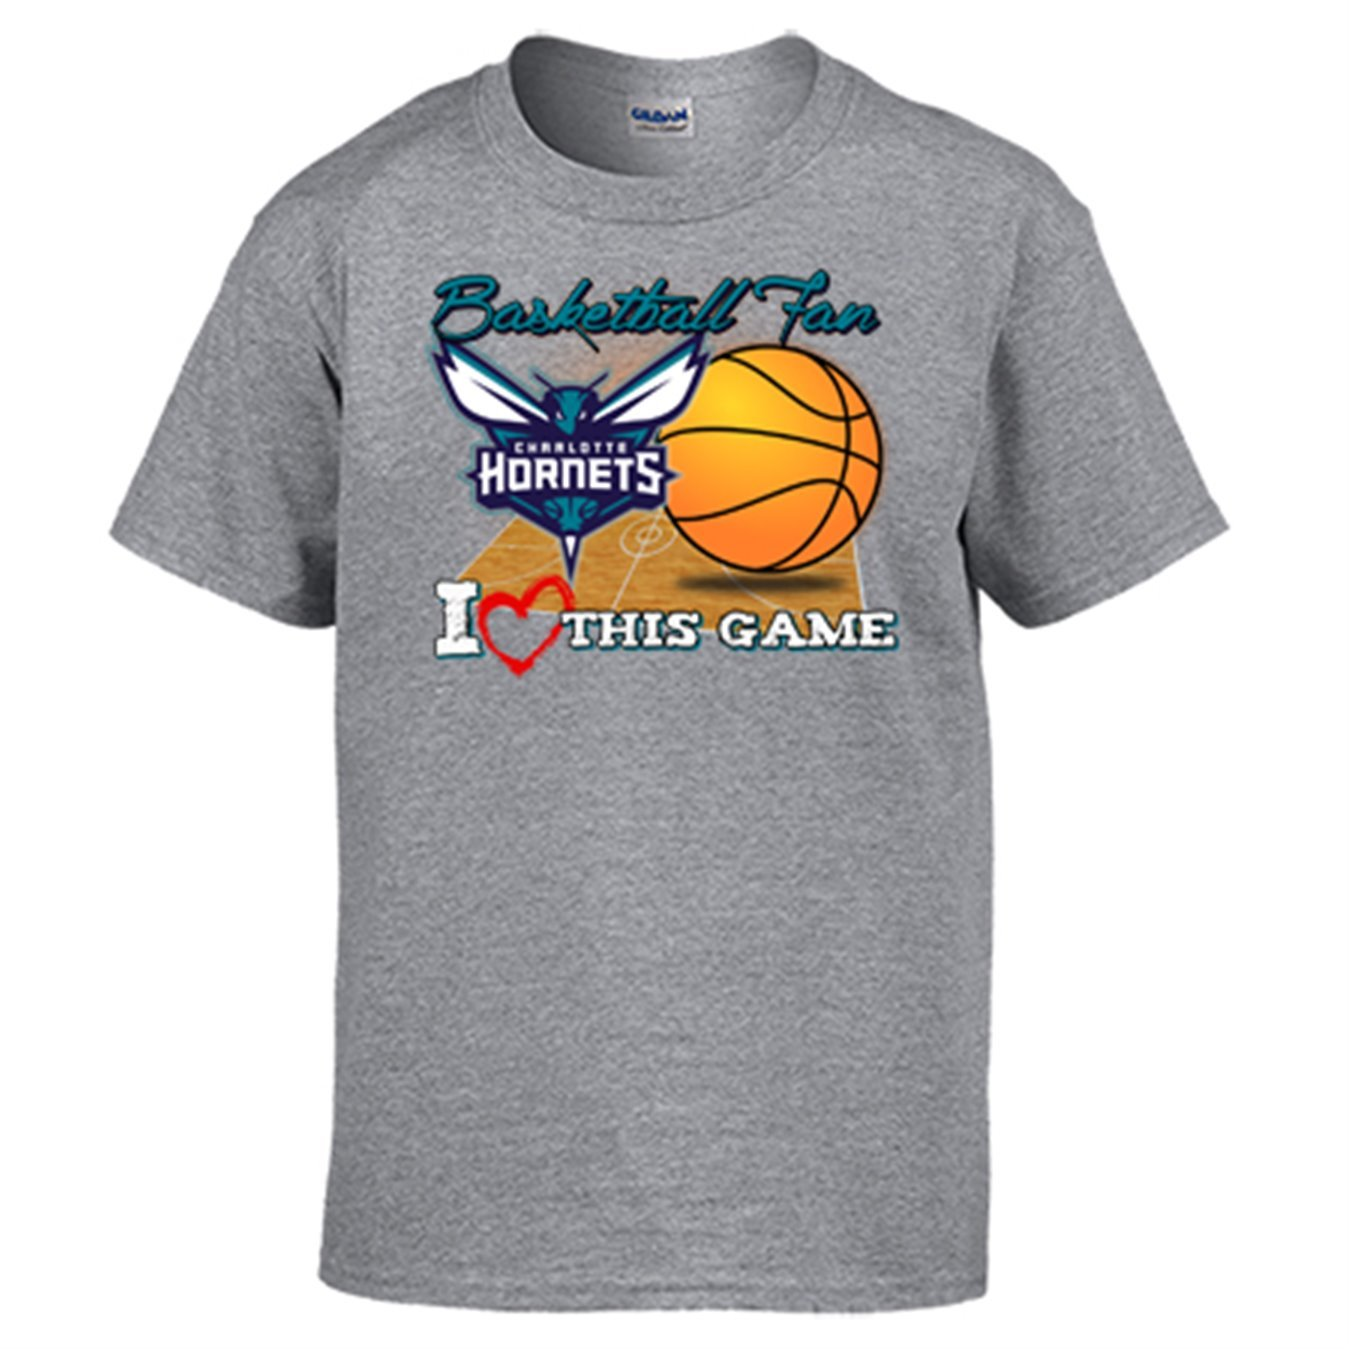 Camiseta NBA Charlotte Hornets Baloncesto Basketball fan I Love This Game: Amazon.es: Ropa y accesorios